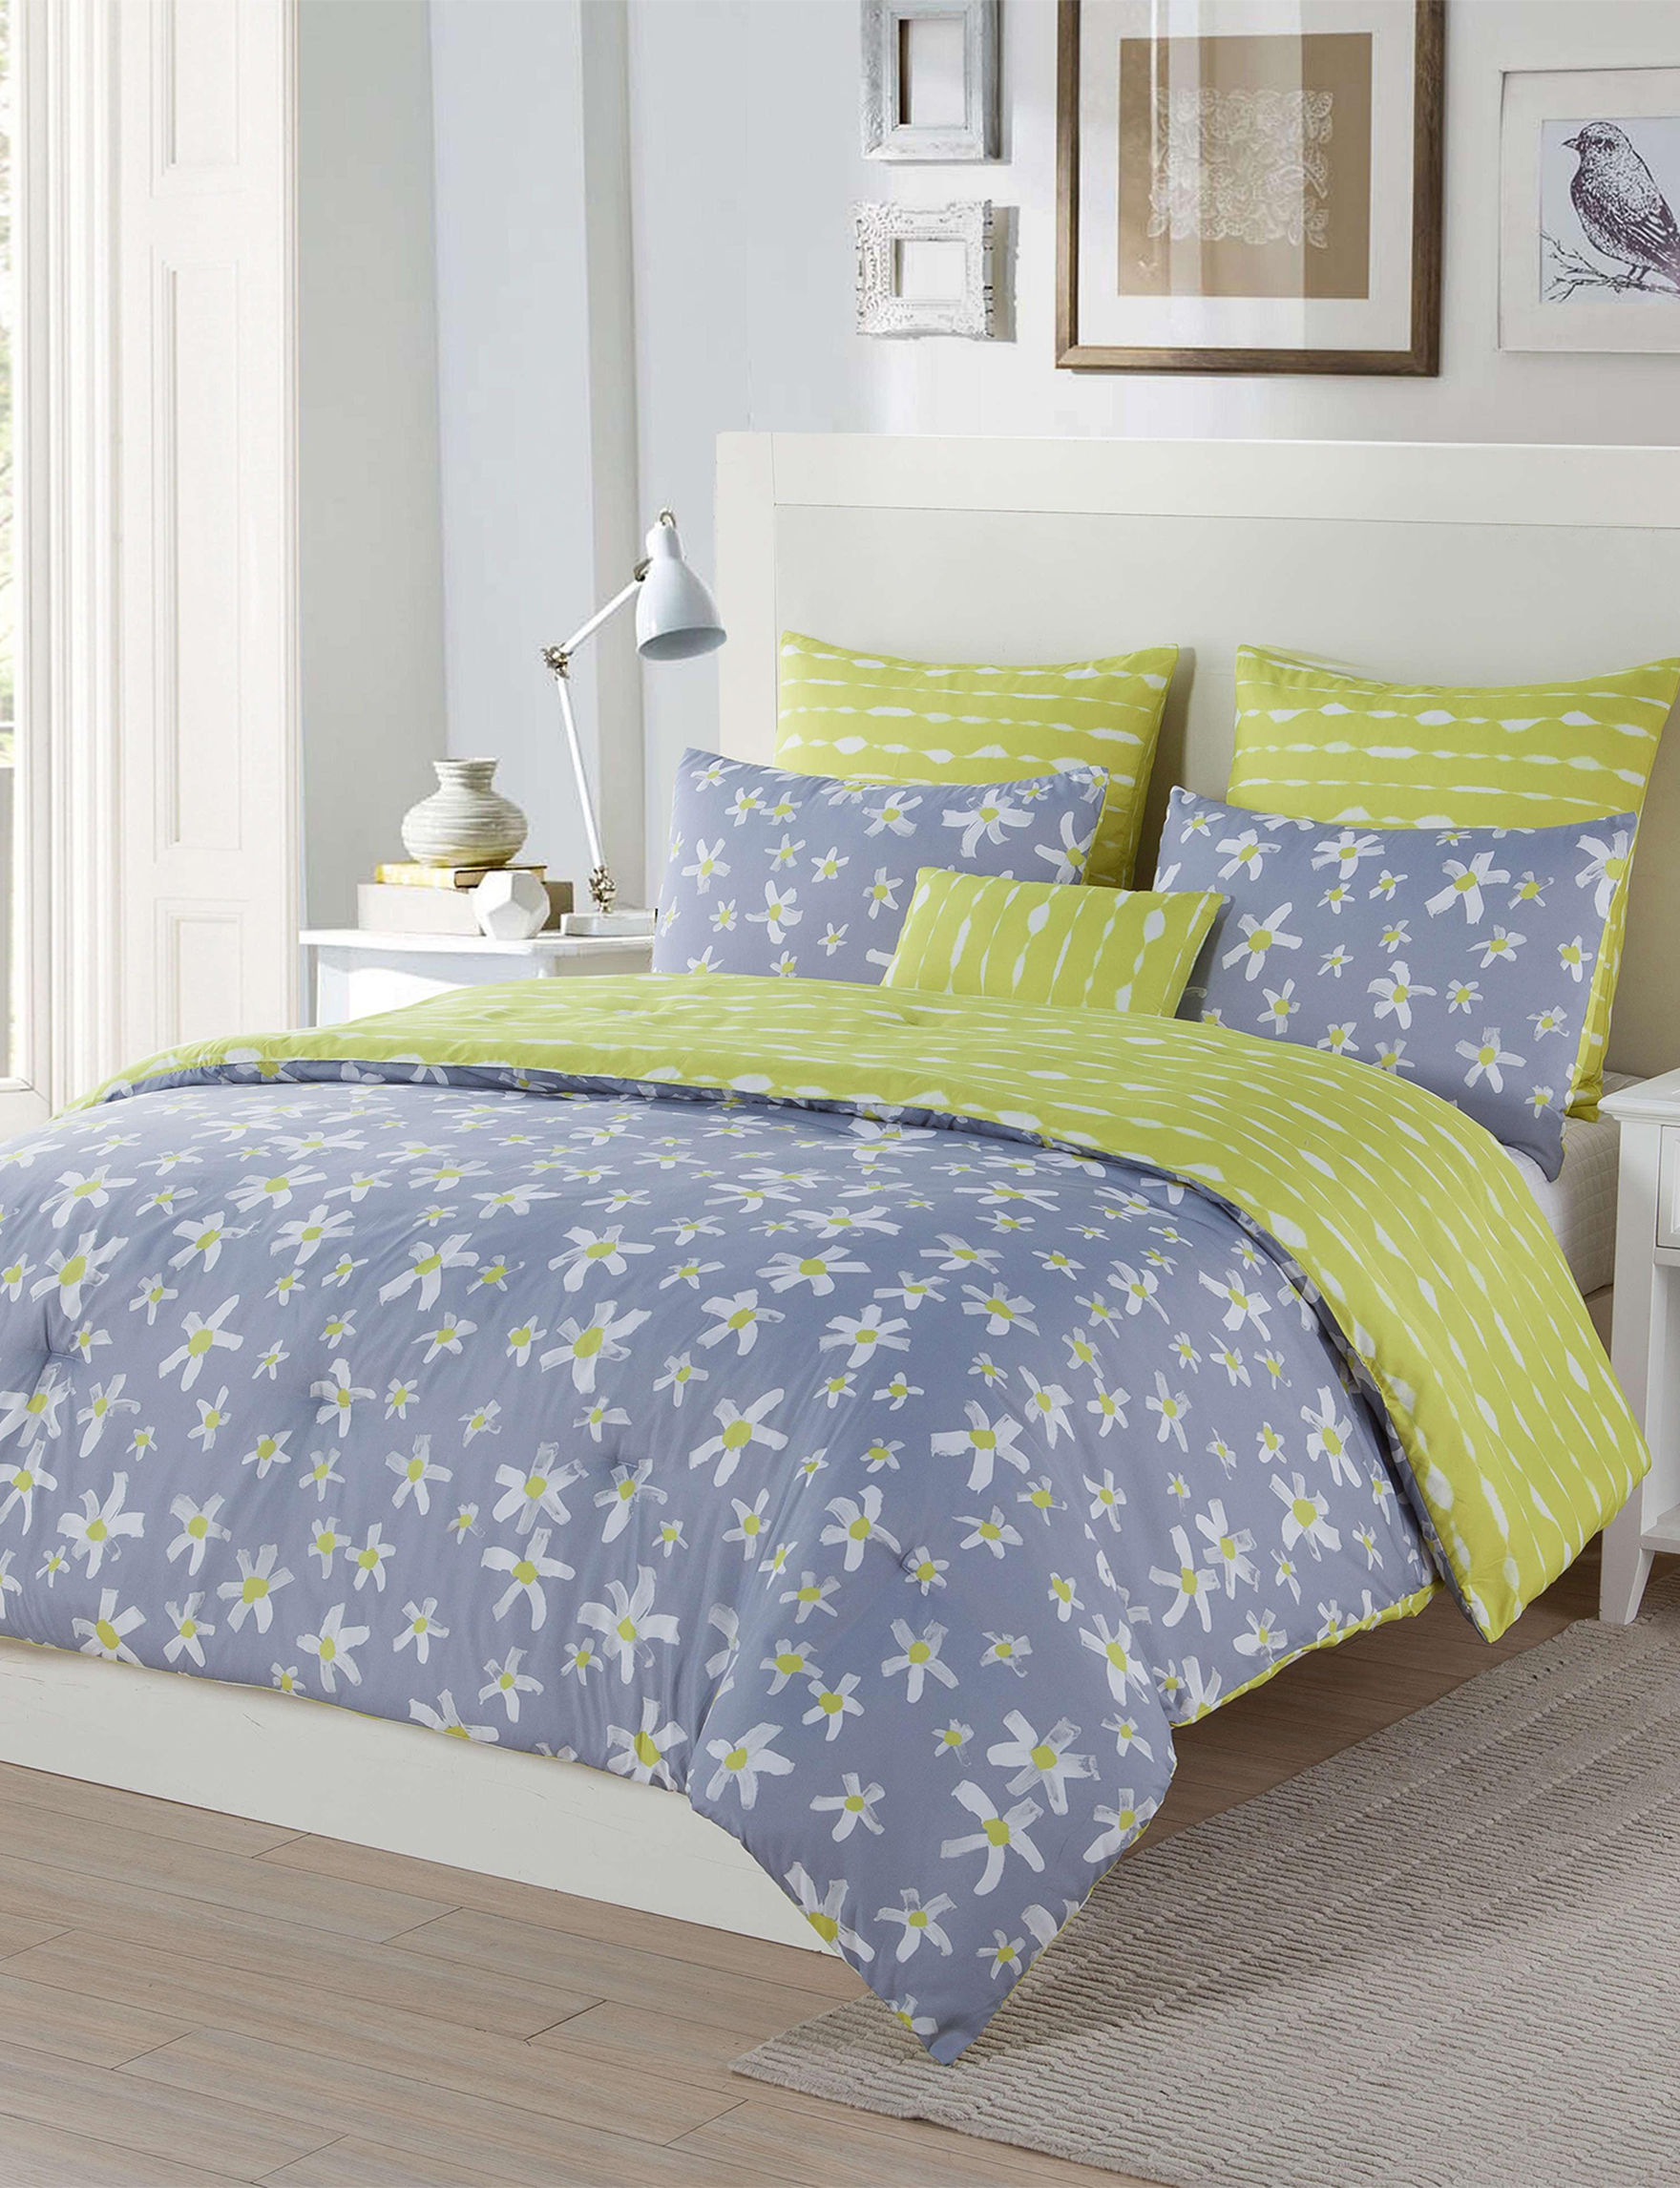 Kensie Yellow / Blue Comforters & Comforter Sets